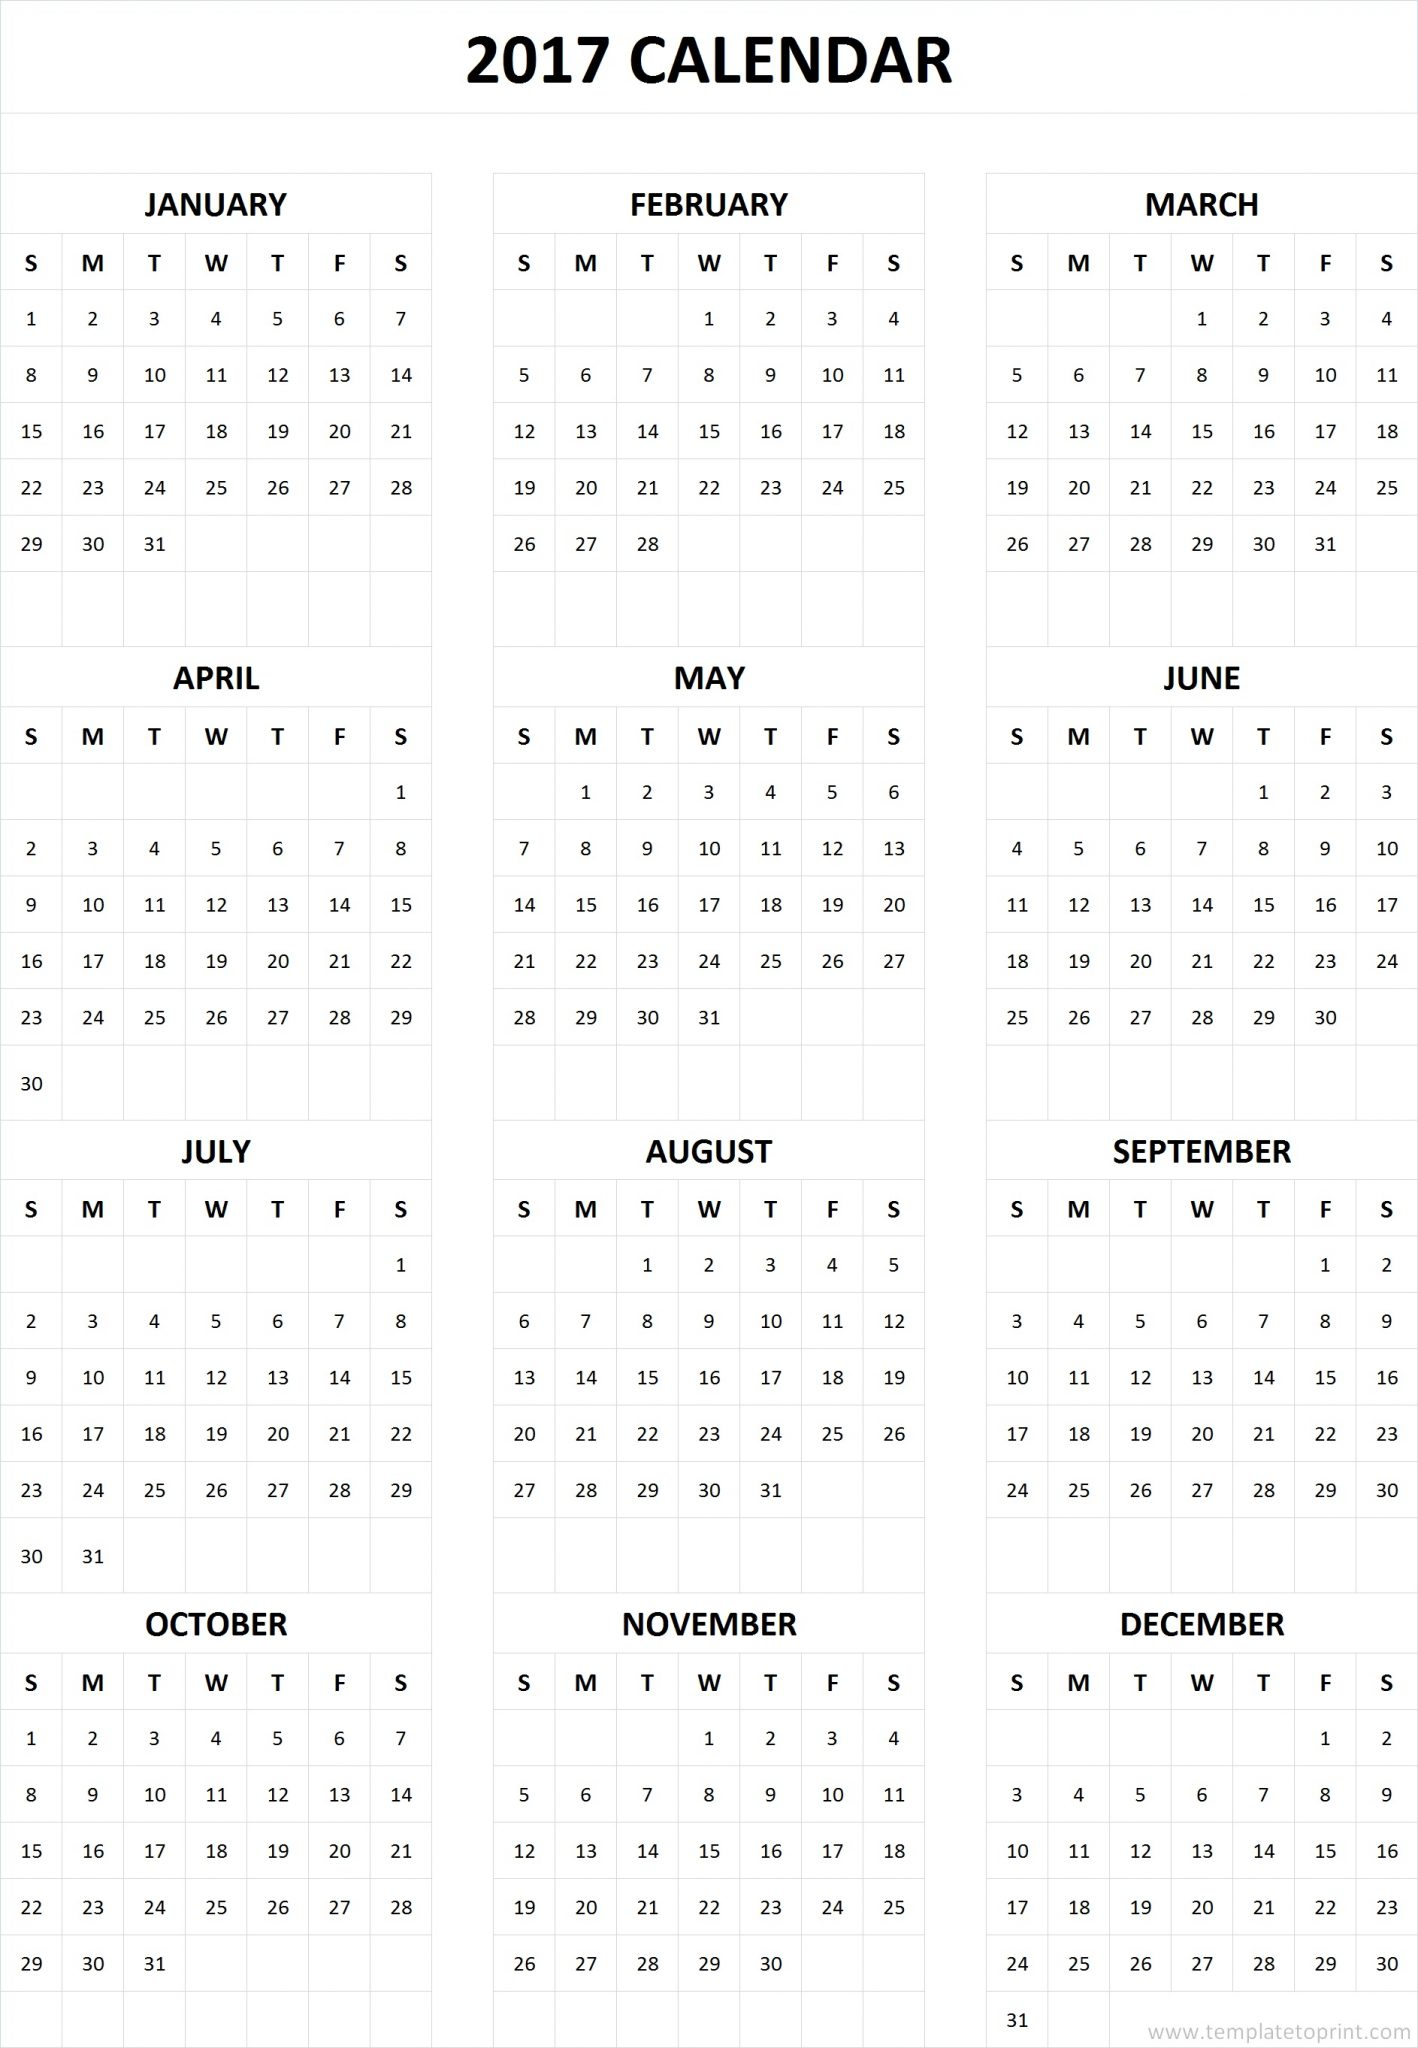 2017 Calendar Printable One Page » Template To Print intended for Calendar Printable One Page Templates